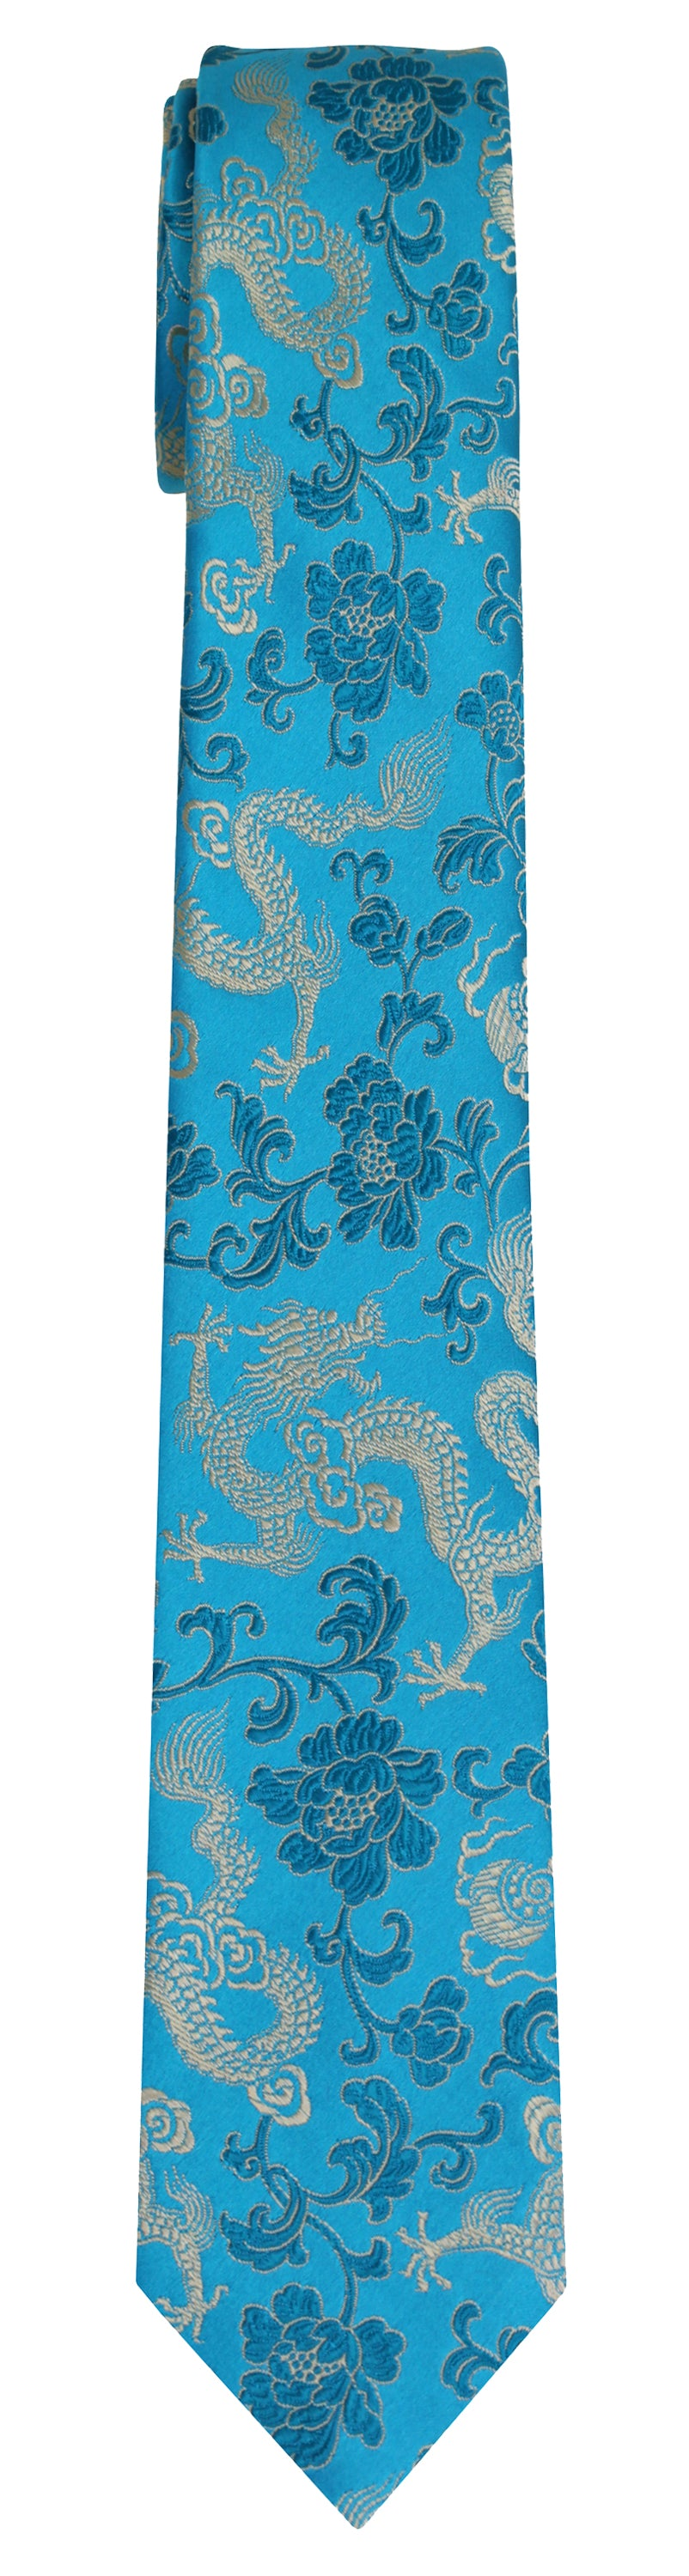 Mimi Fong Dragon Tie in Aqua